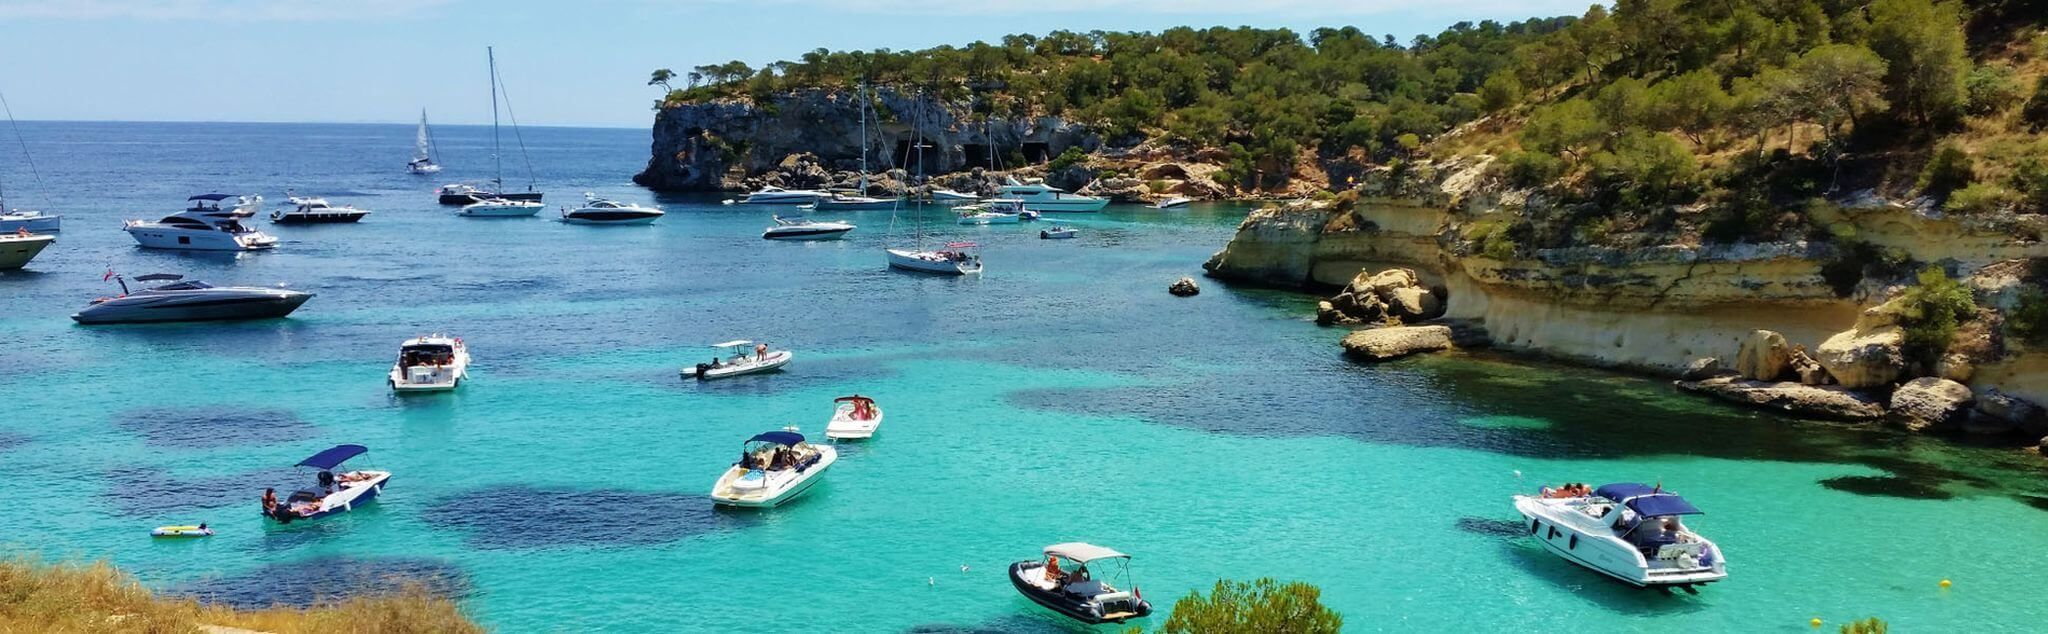 Activities in Islas Baleares